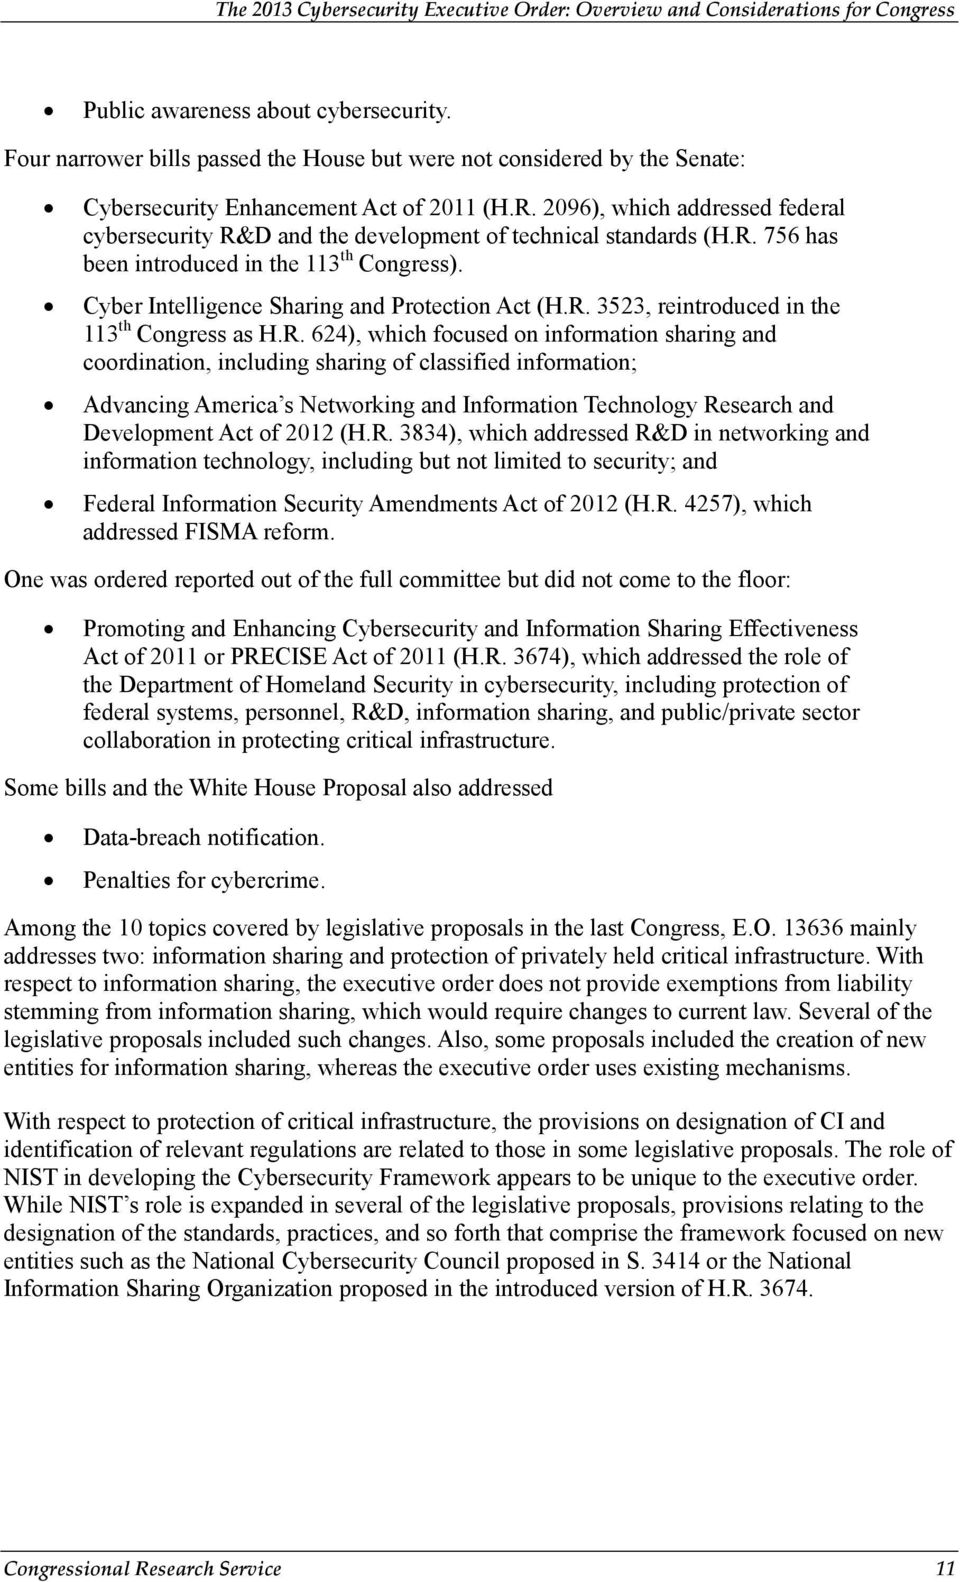 R. 624), which focused on information sharing and coordination, including sharing of classified information; Advancing America s Networking and Information Technology Research and Development Act of